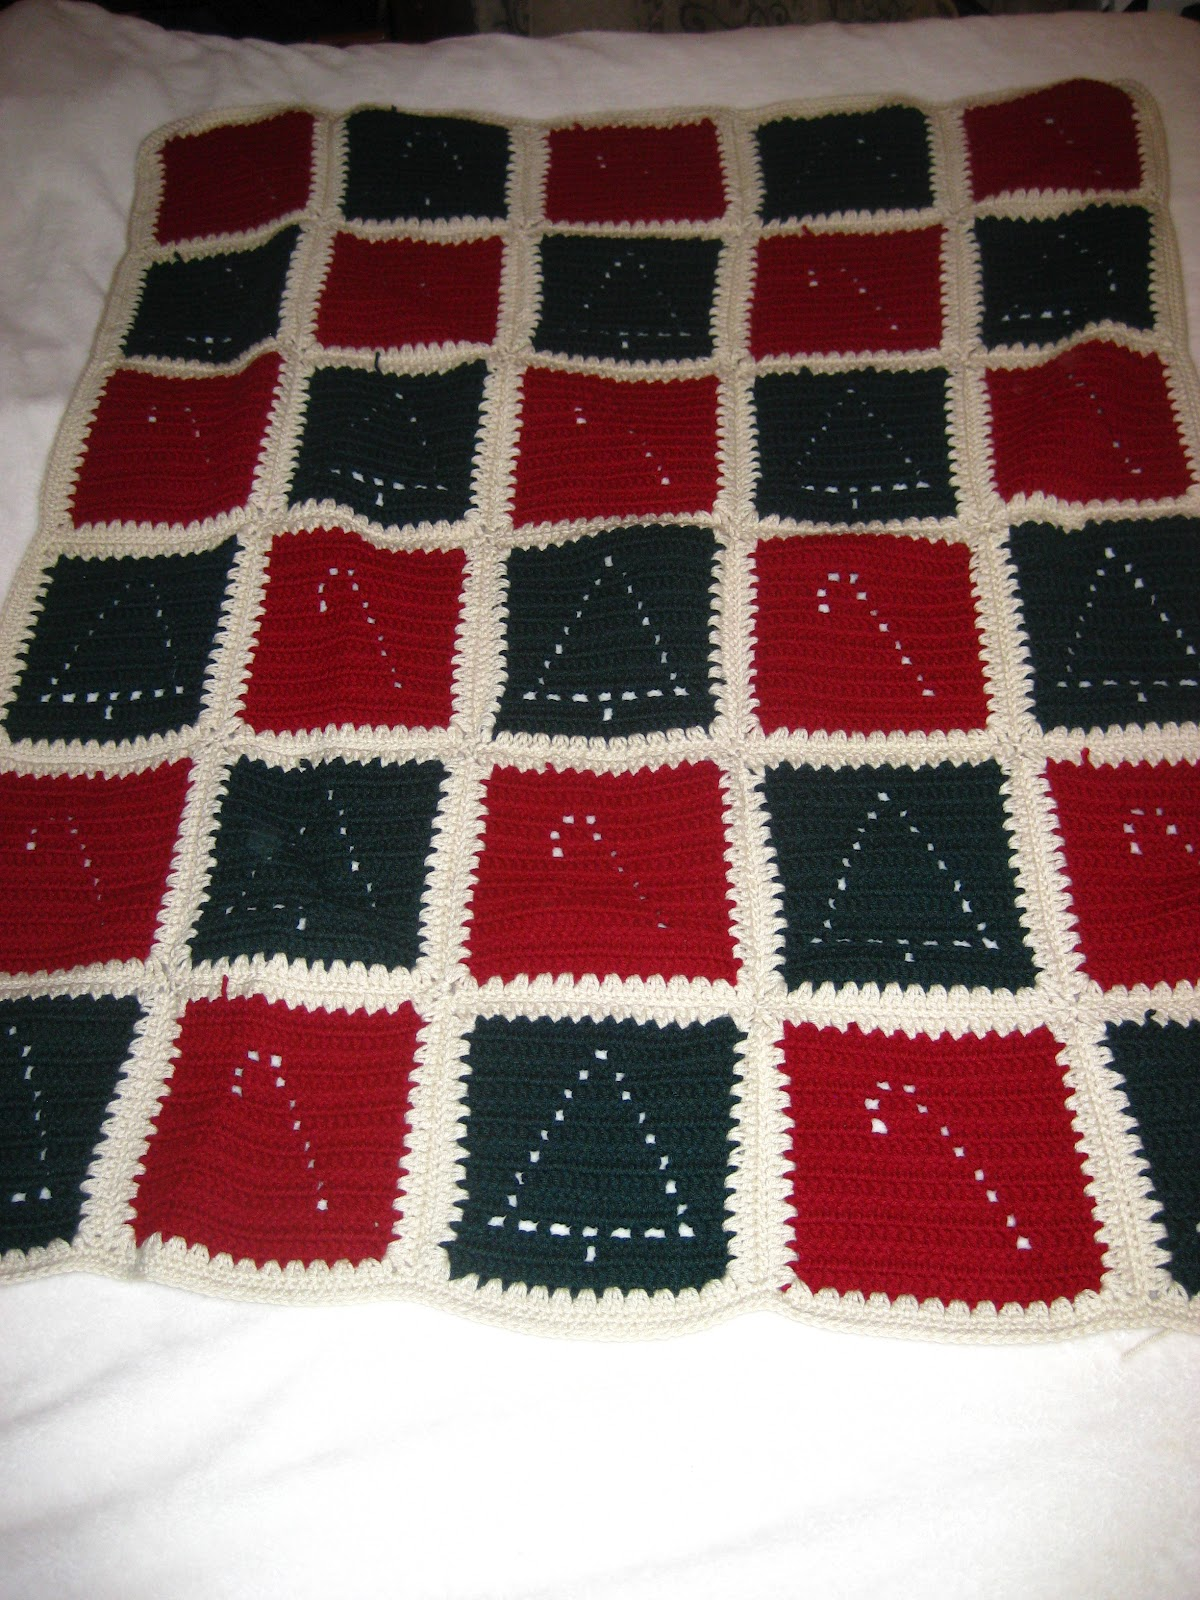 My secret crochet blog christmas tree and candy cane afghan